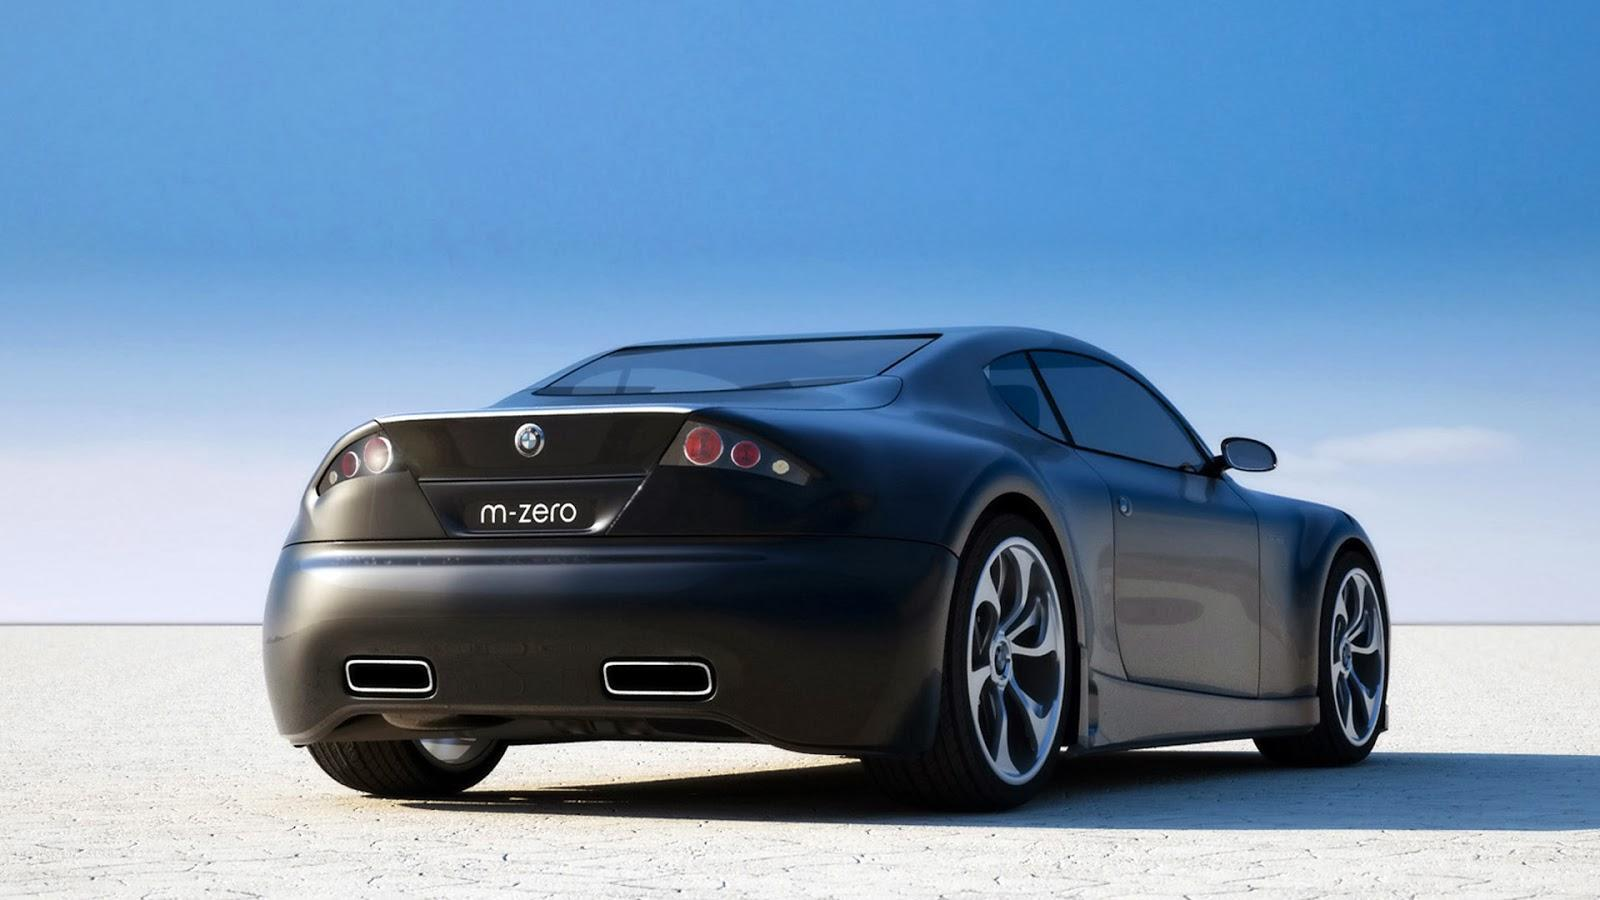 Bmw Cars Wallpapers Hd For Android Apk Download